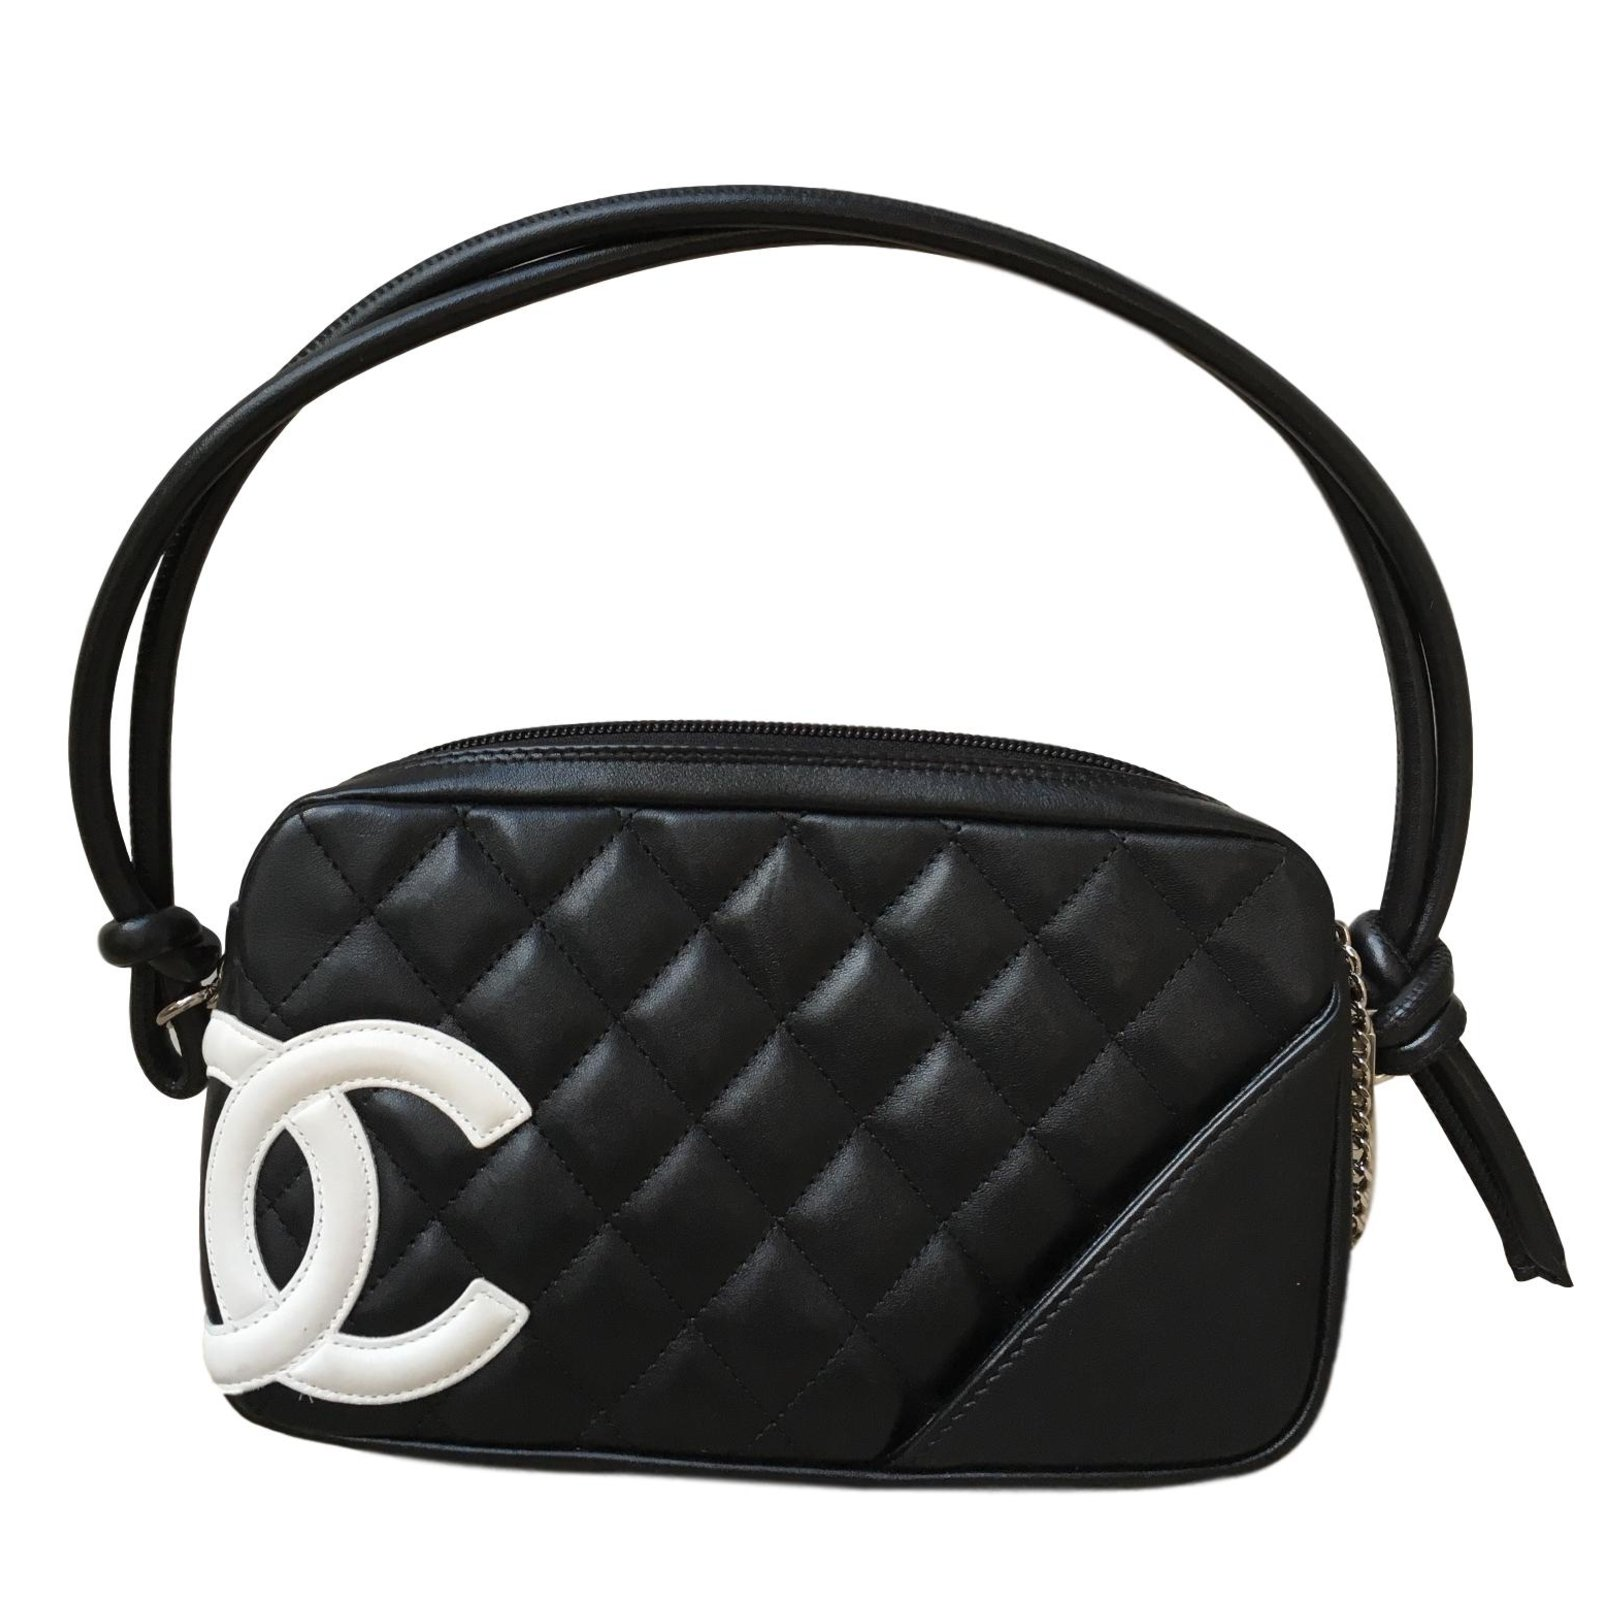 60c8fbfcb65a23 Chanel Cambon Handbags Leather Black ref.47475 - Joli Closet